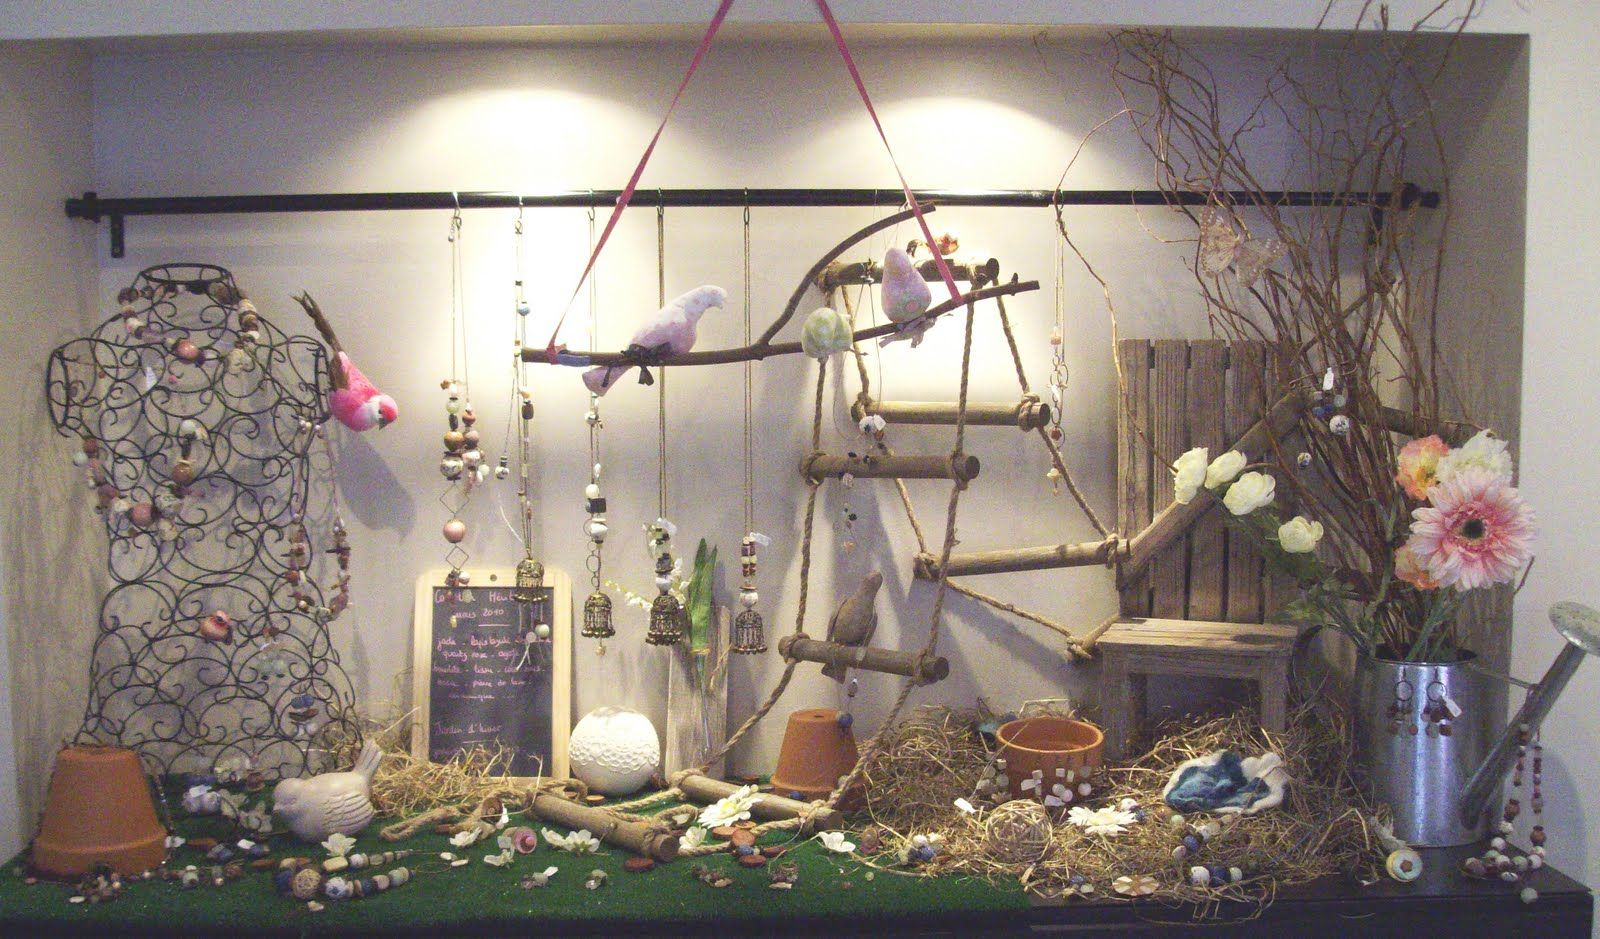 Decoration De Noel Vitrine Magasin Avec Branchage